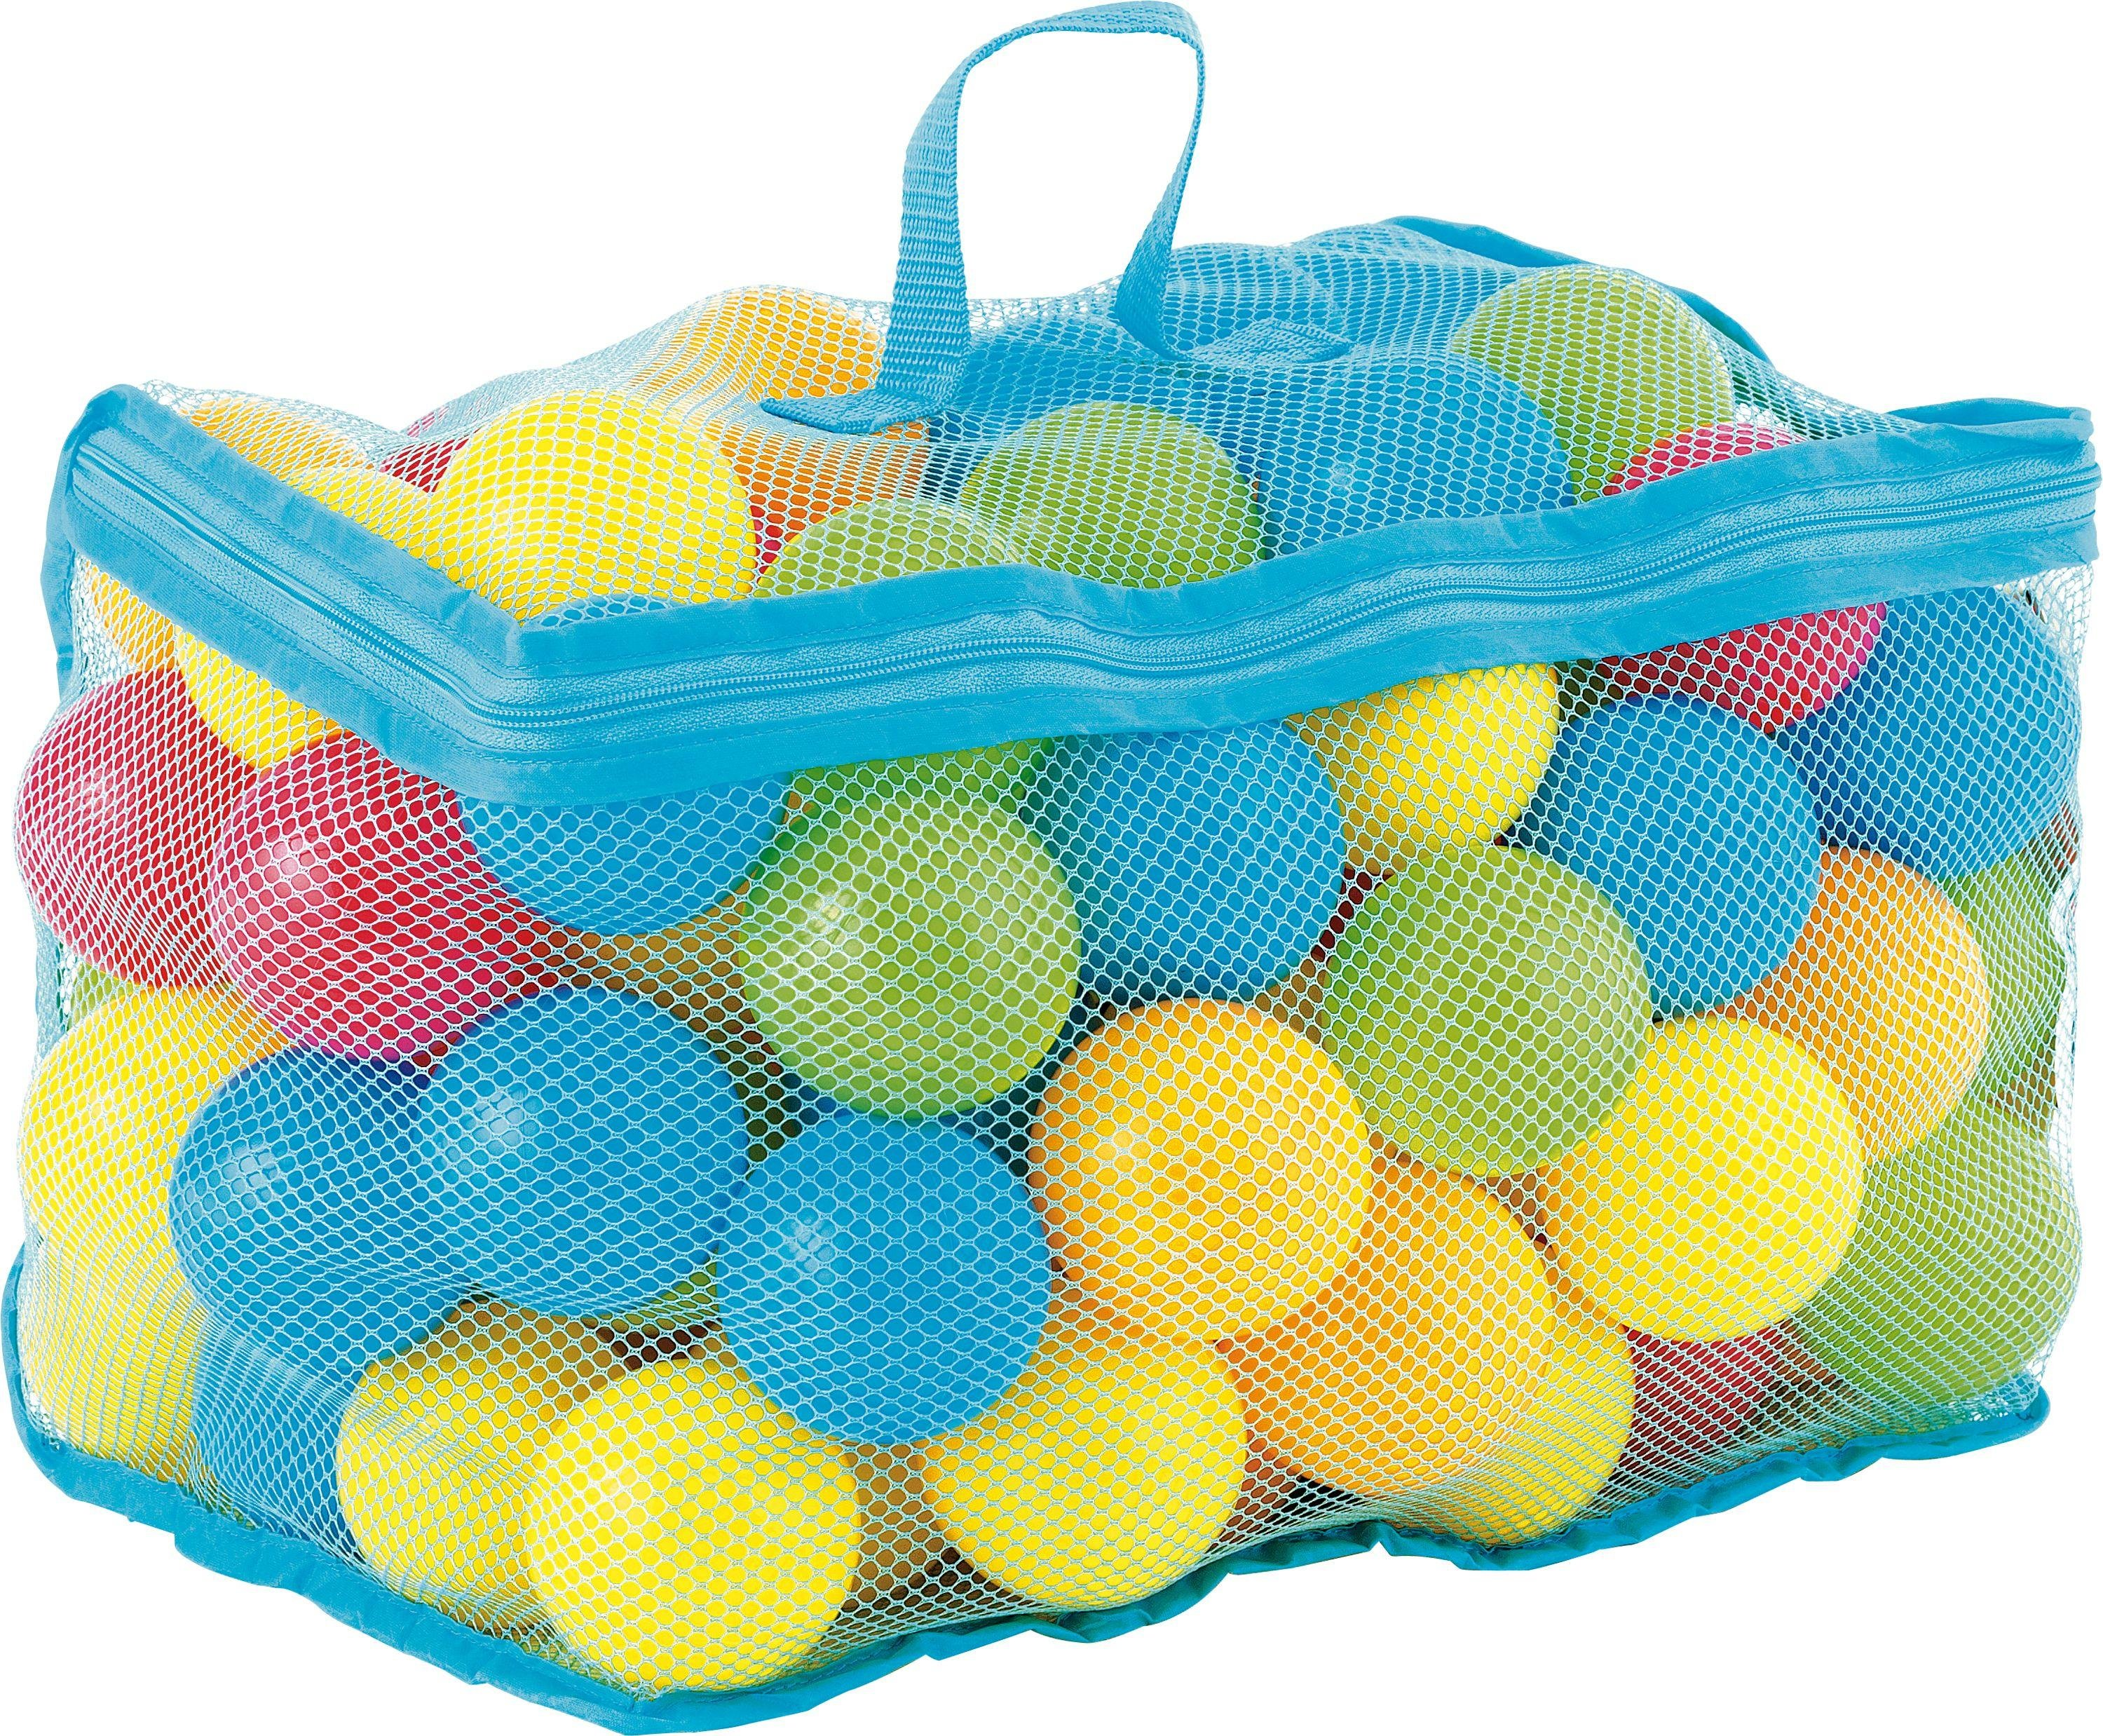 Chad Valley   Bag Of 100 Multi Coloured Play Balls